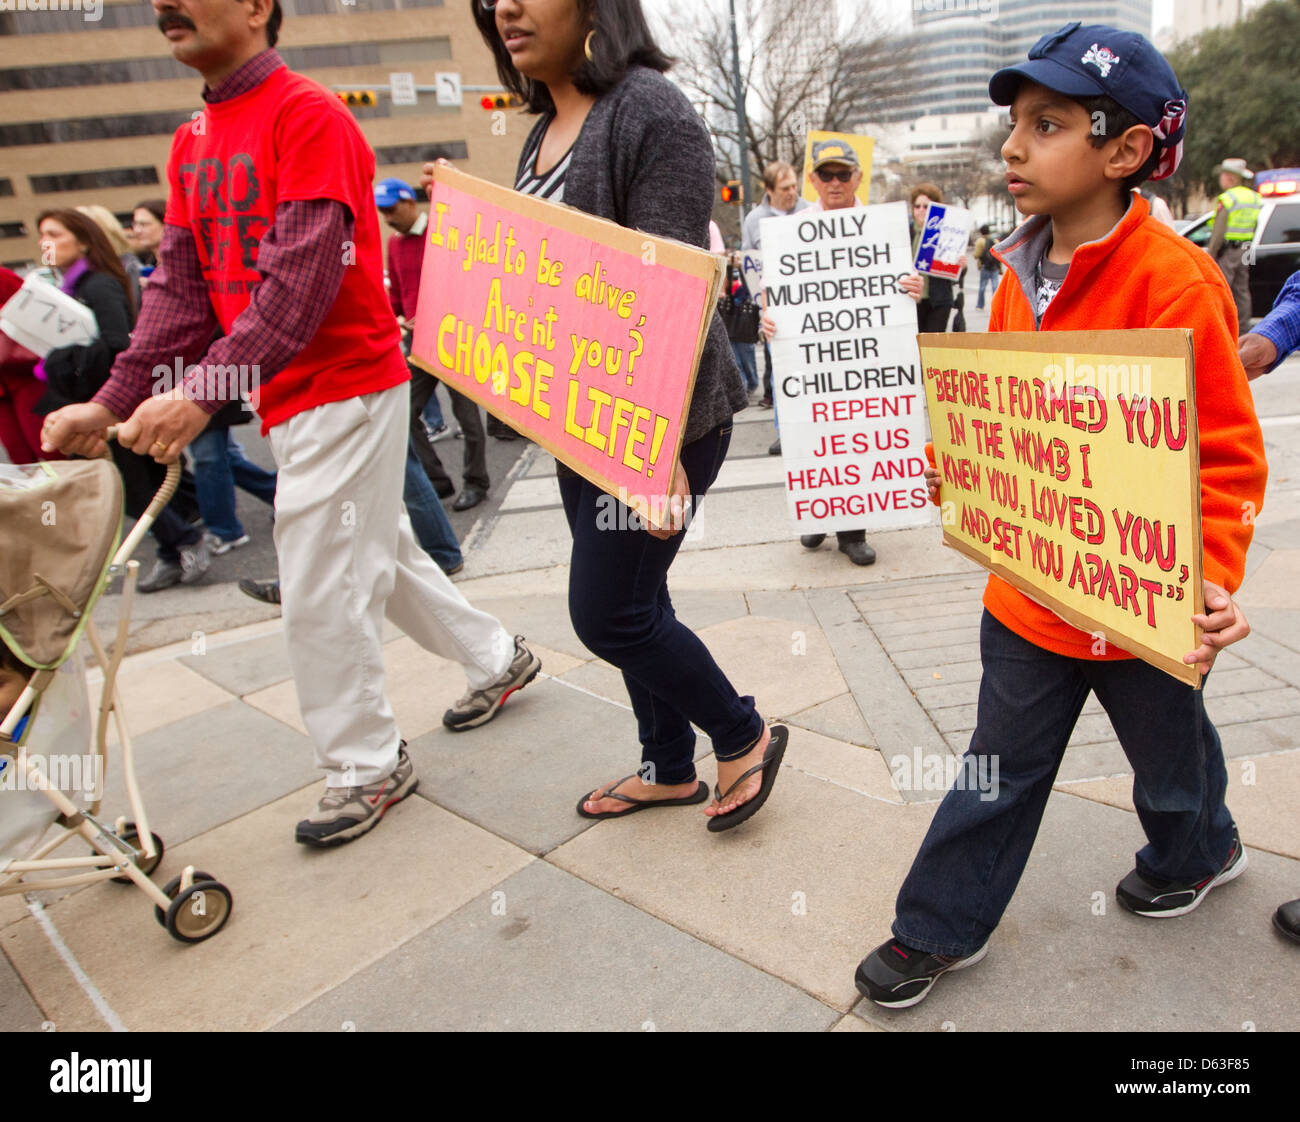 Anti-abortion, pro-life citizens and clergy attend rally at the Texas Capitol in Austin, Texas - Stock Image